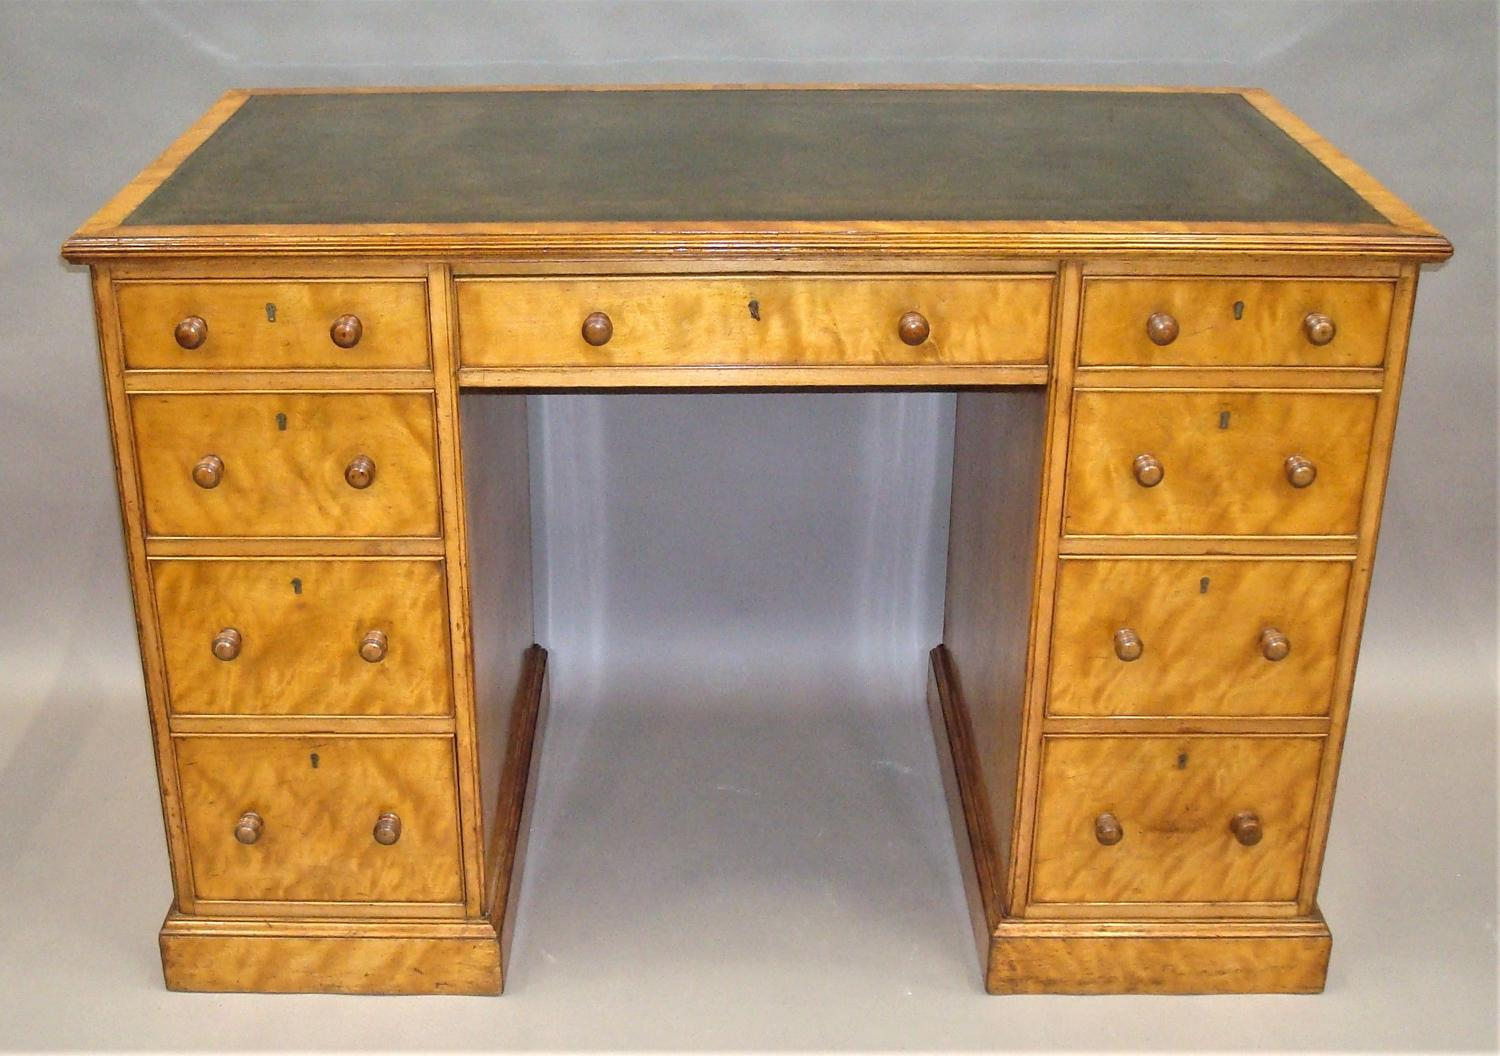 Regency satin birch pedestal desk